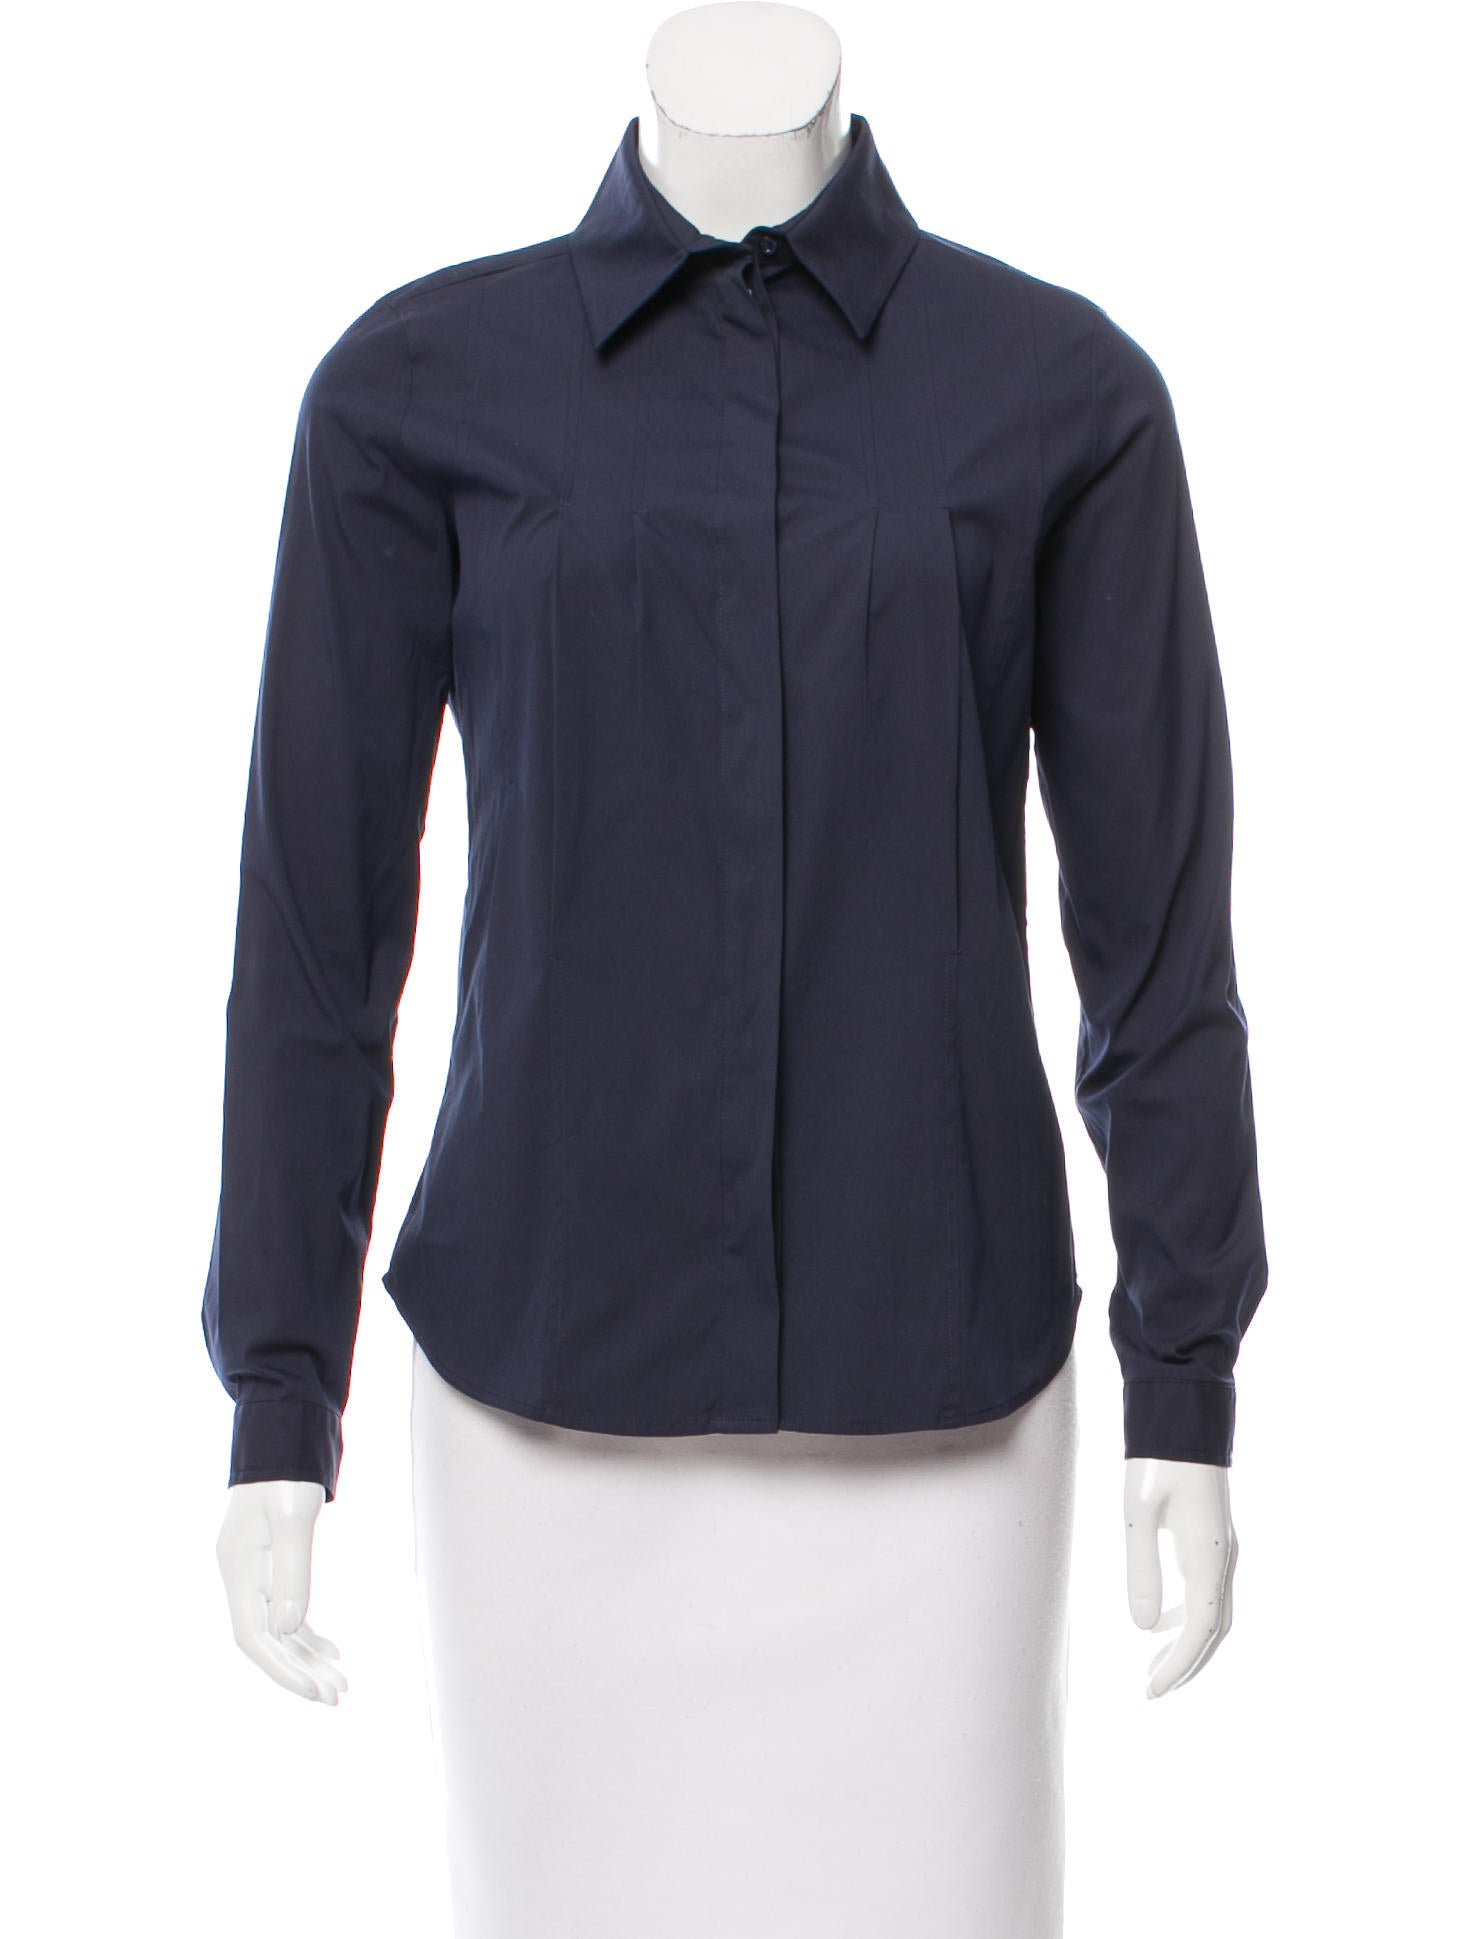 Christian dior button up long sleeve top clothing for Christian dior button up shirt